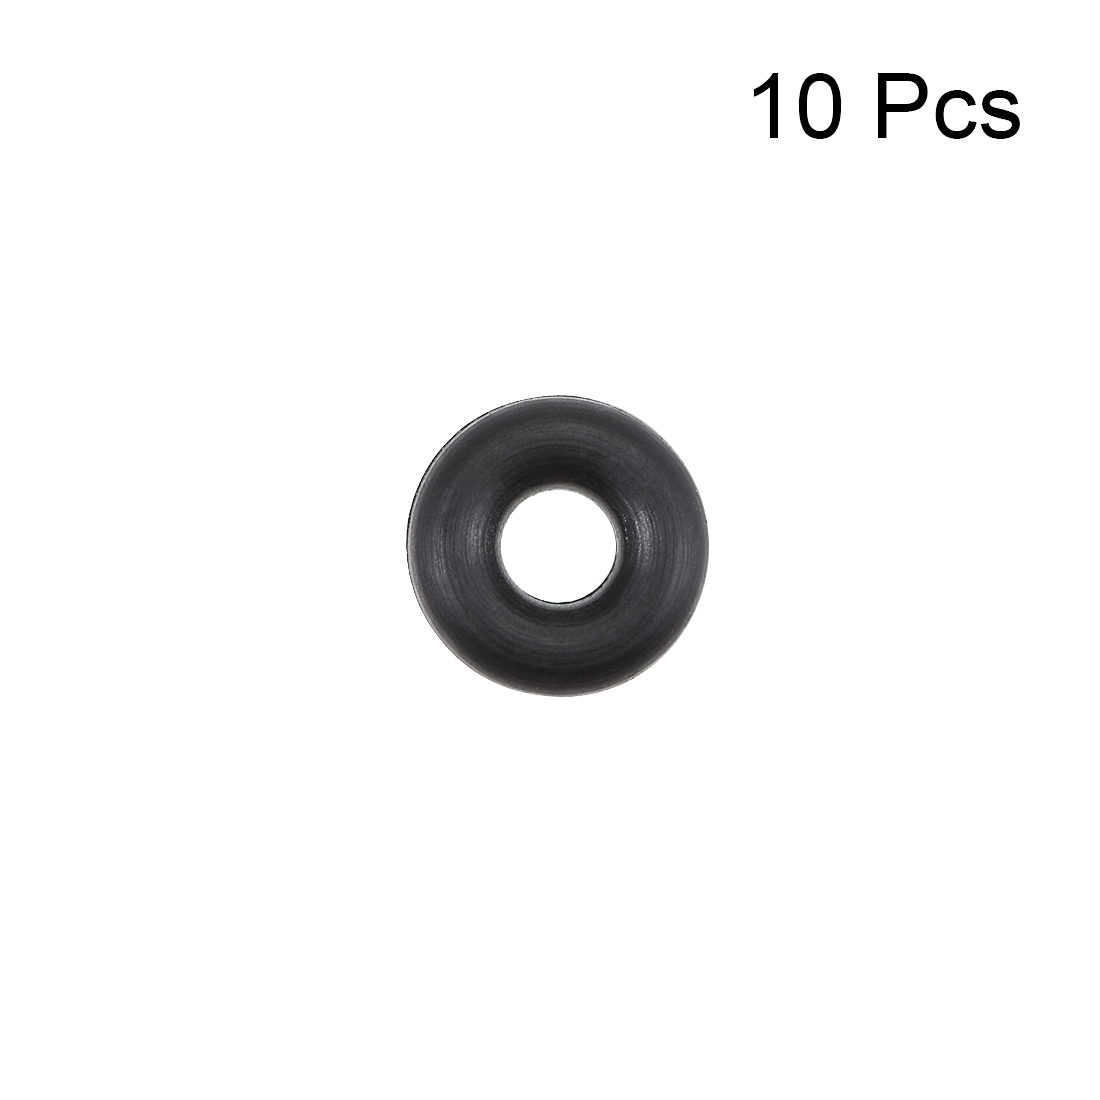 8mm OD 2mm Width uxcell Silicone O-Rings Seal Gasket 20pcs 4mm Inner Diameter